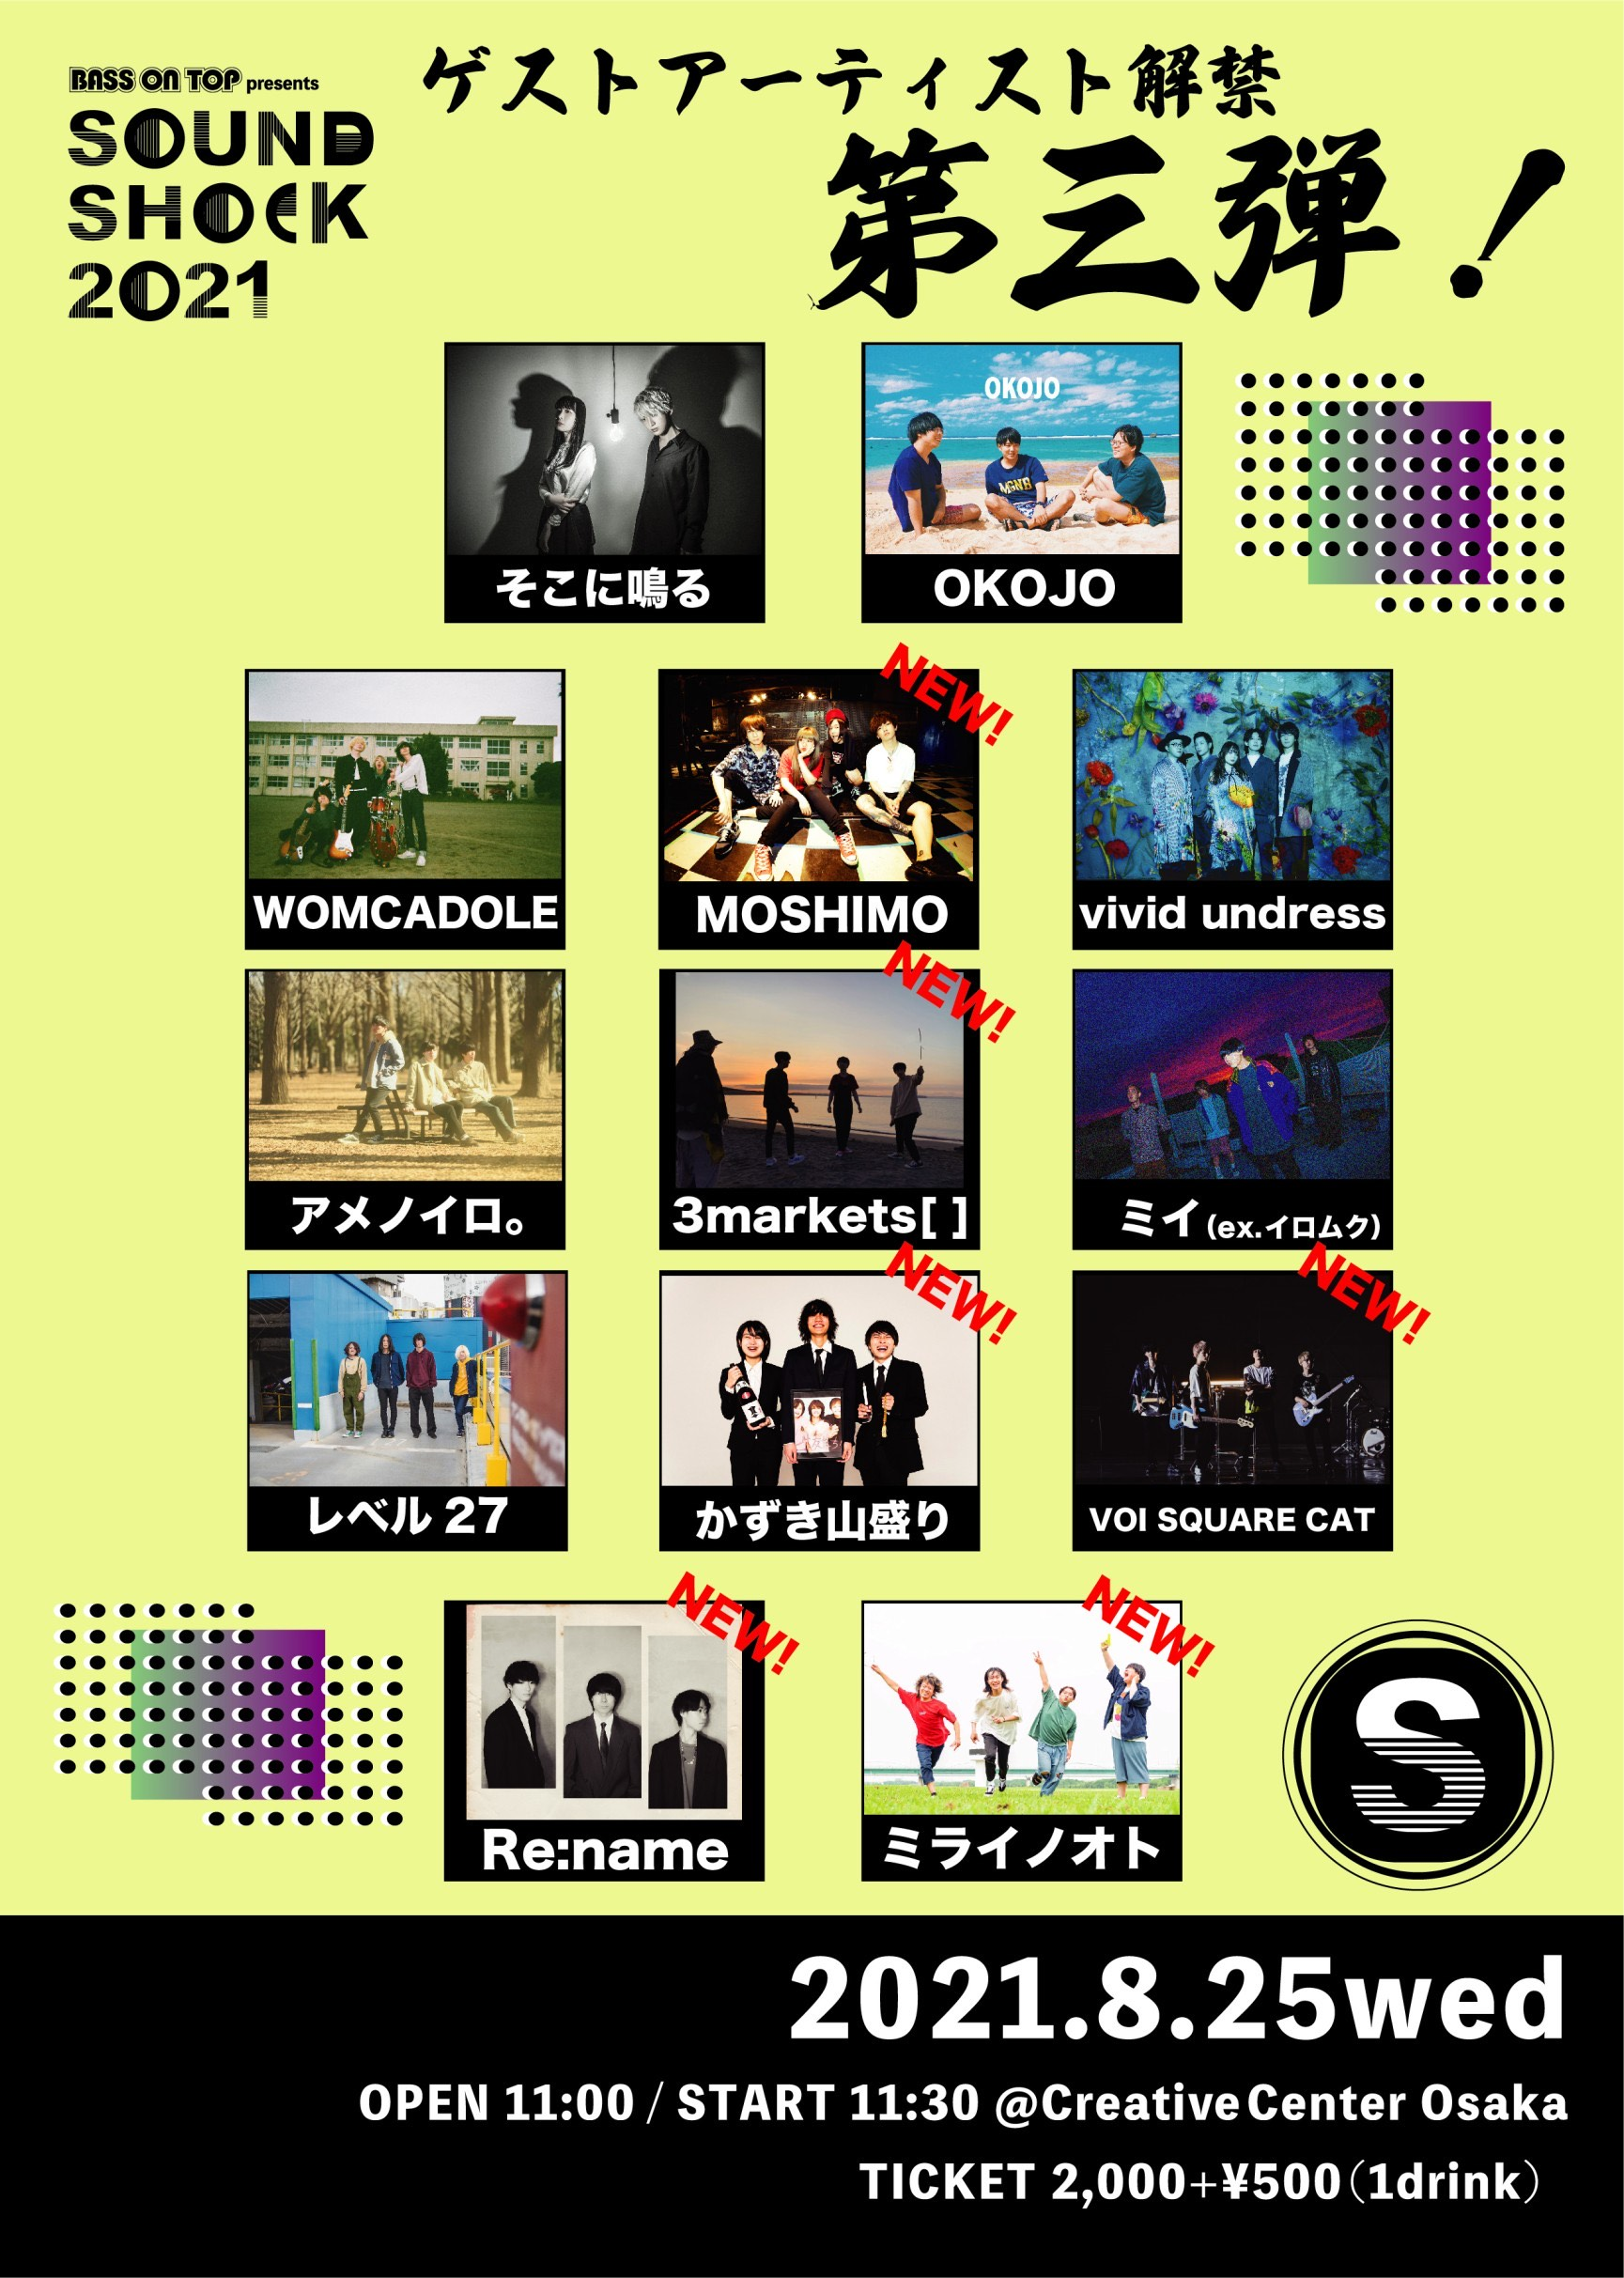 BASS ON TOP presents 「SOUND SHOCK 2021」